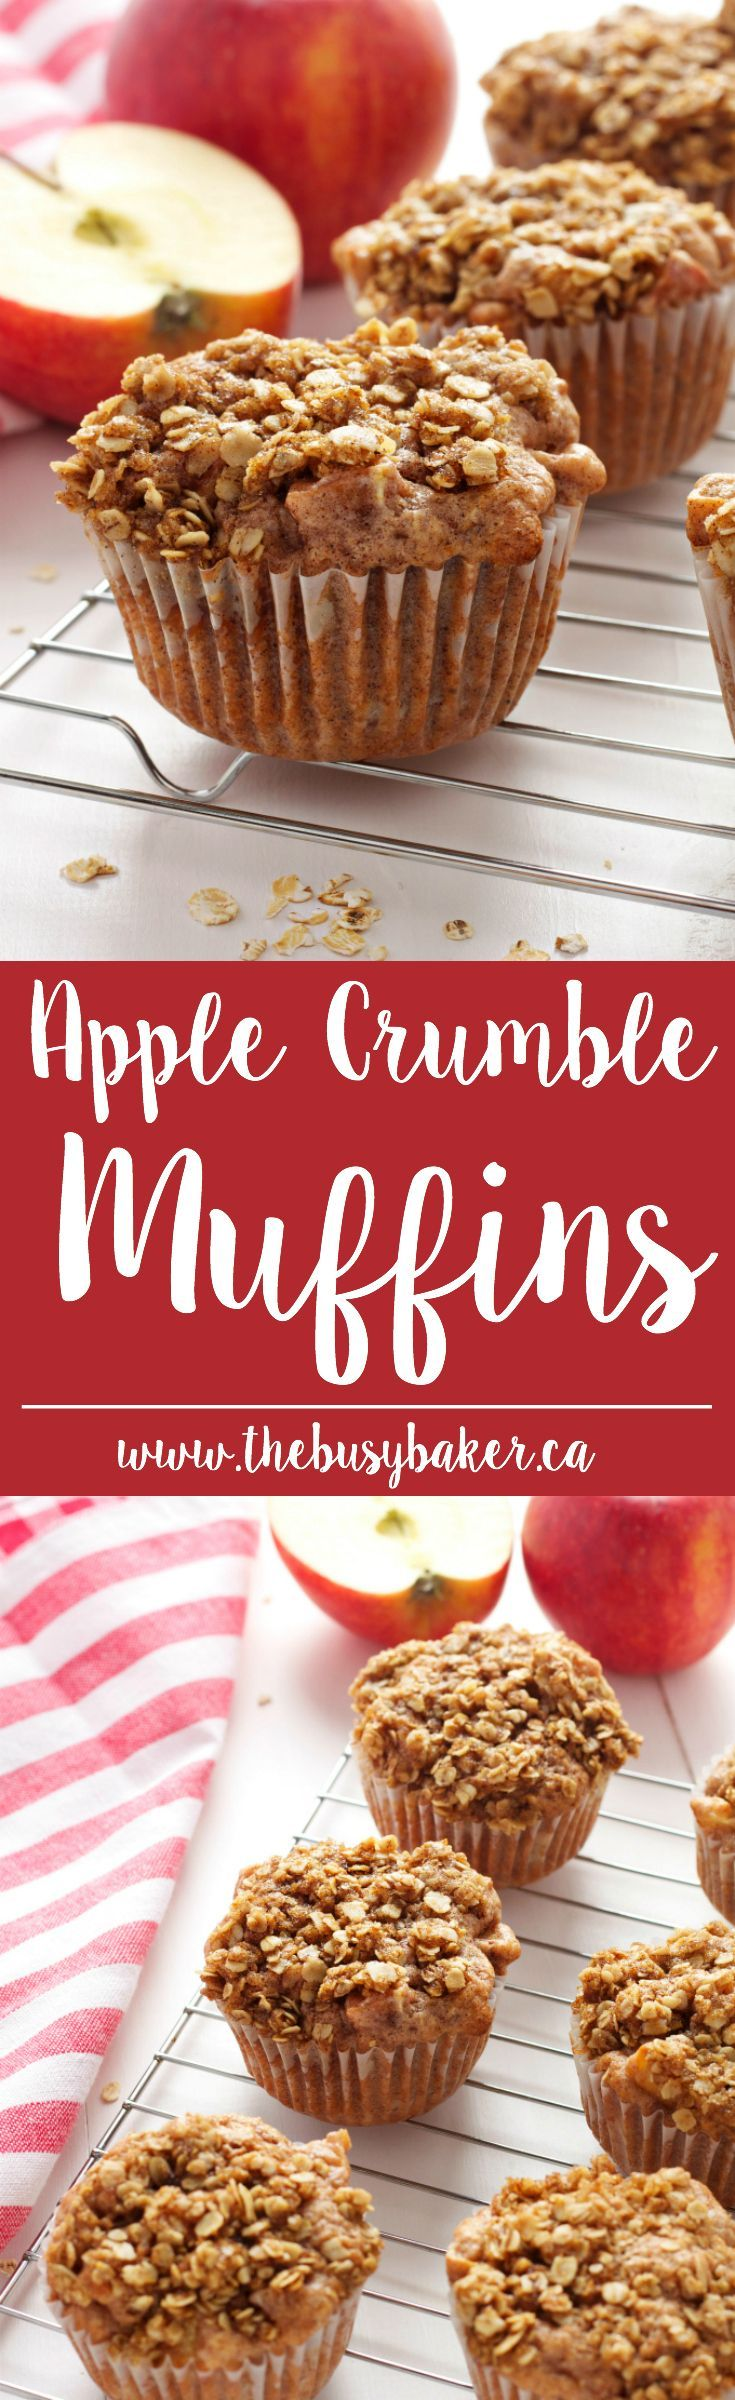 These Apple Crumble Muffins are delicious dessert-inspired muffins made with fresh apples and a delicious crumble topping! Recipe from thebusybaker.ca!